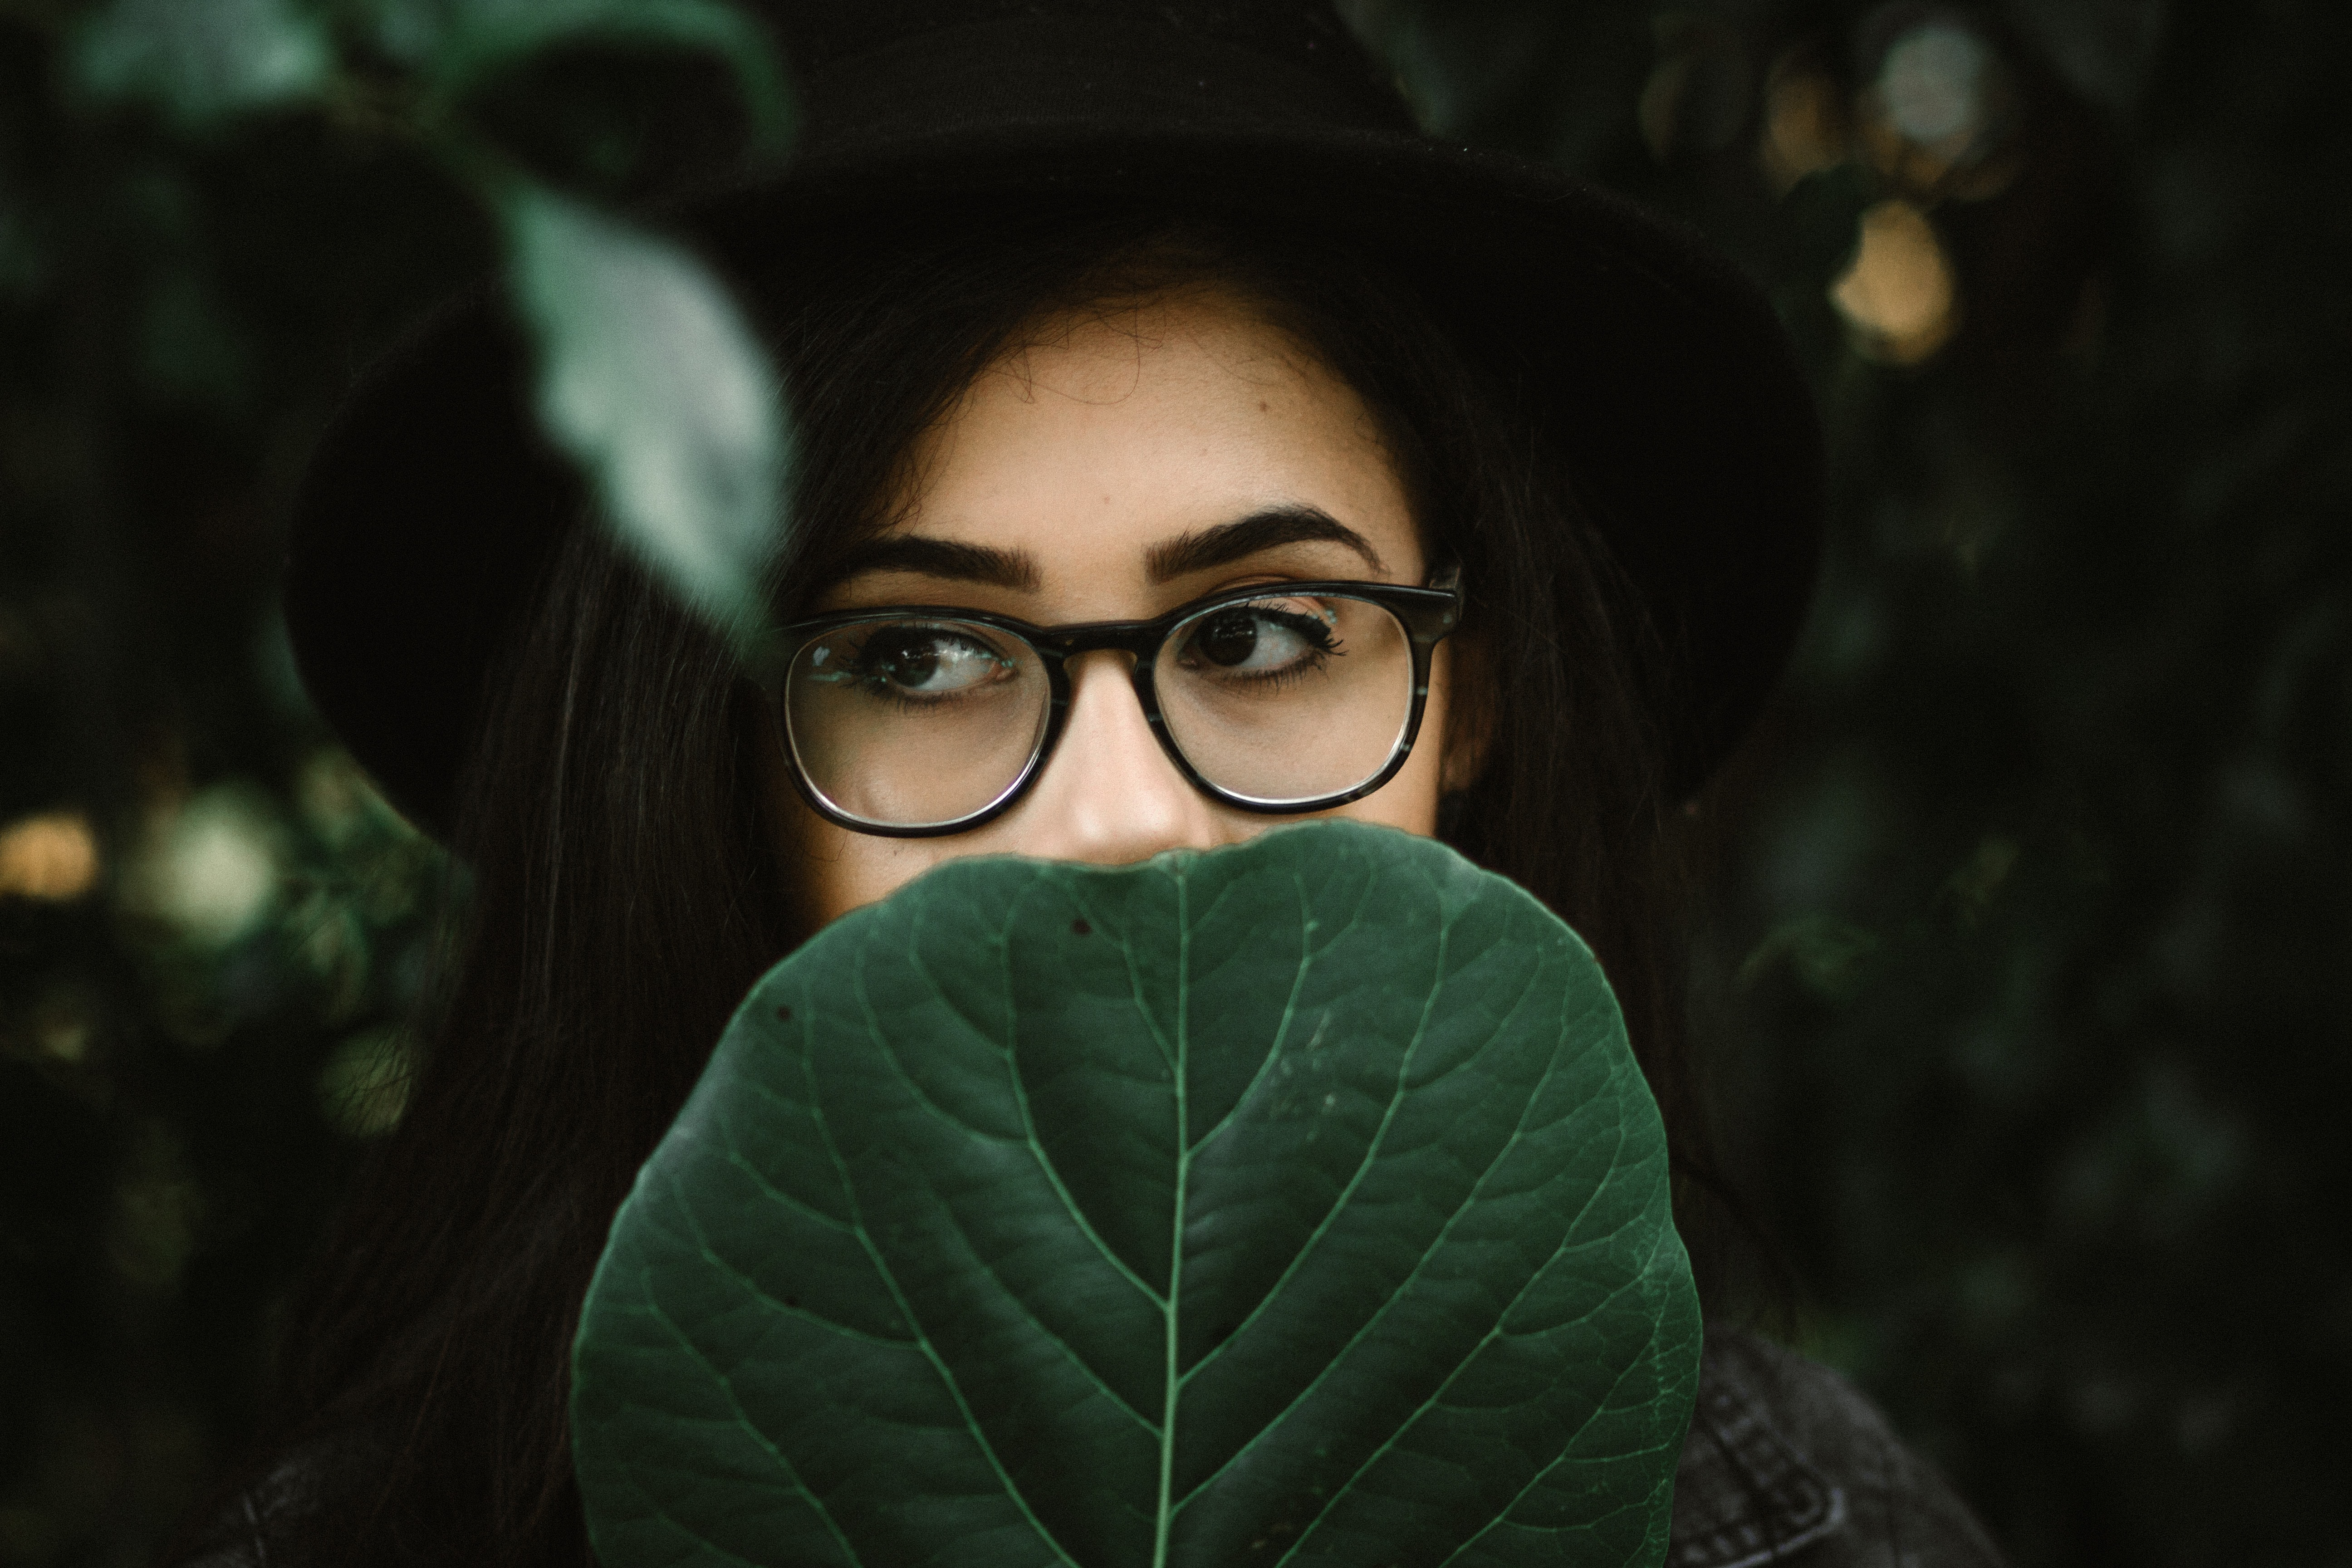 Woman with bold eyebrows and thick rimmed glasses behind a leaf